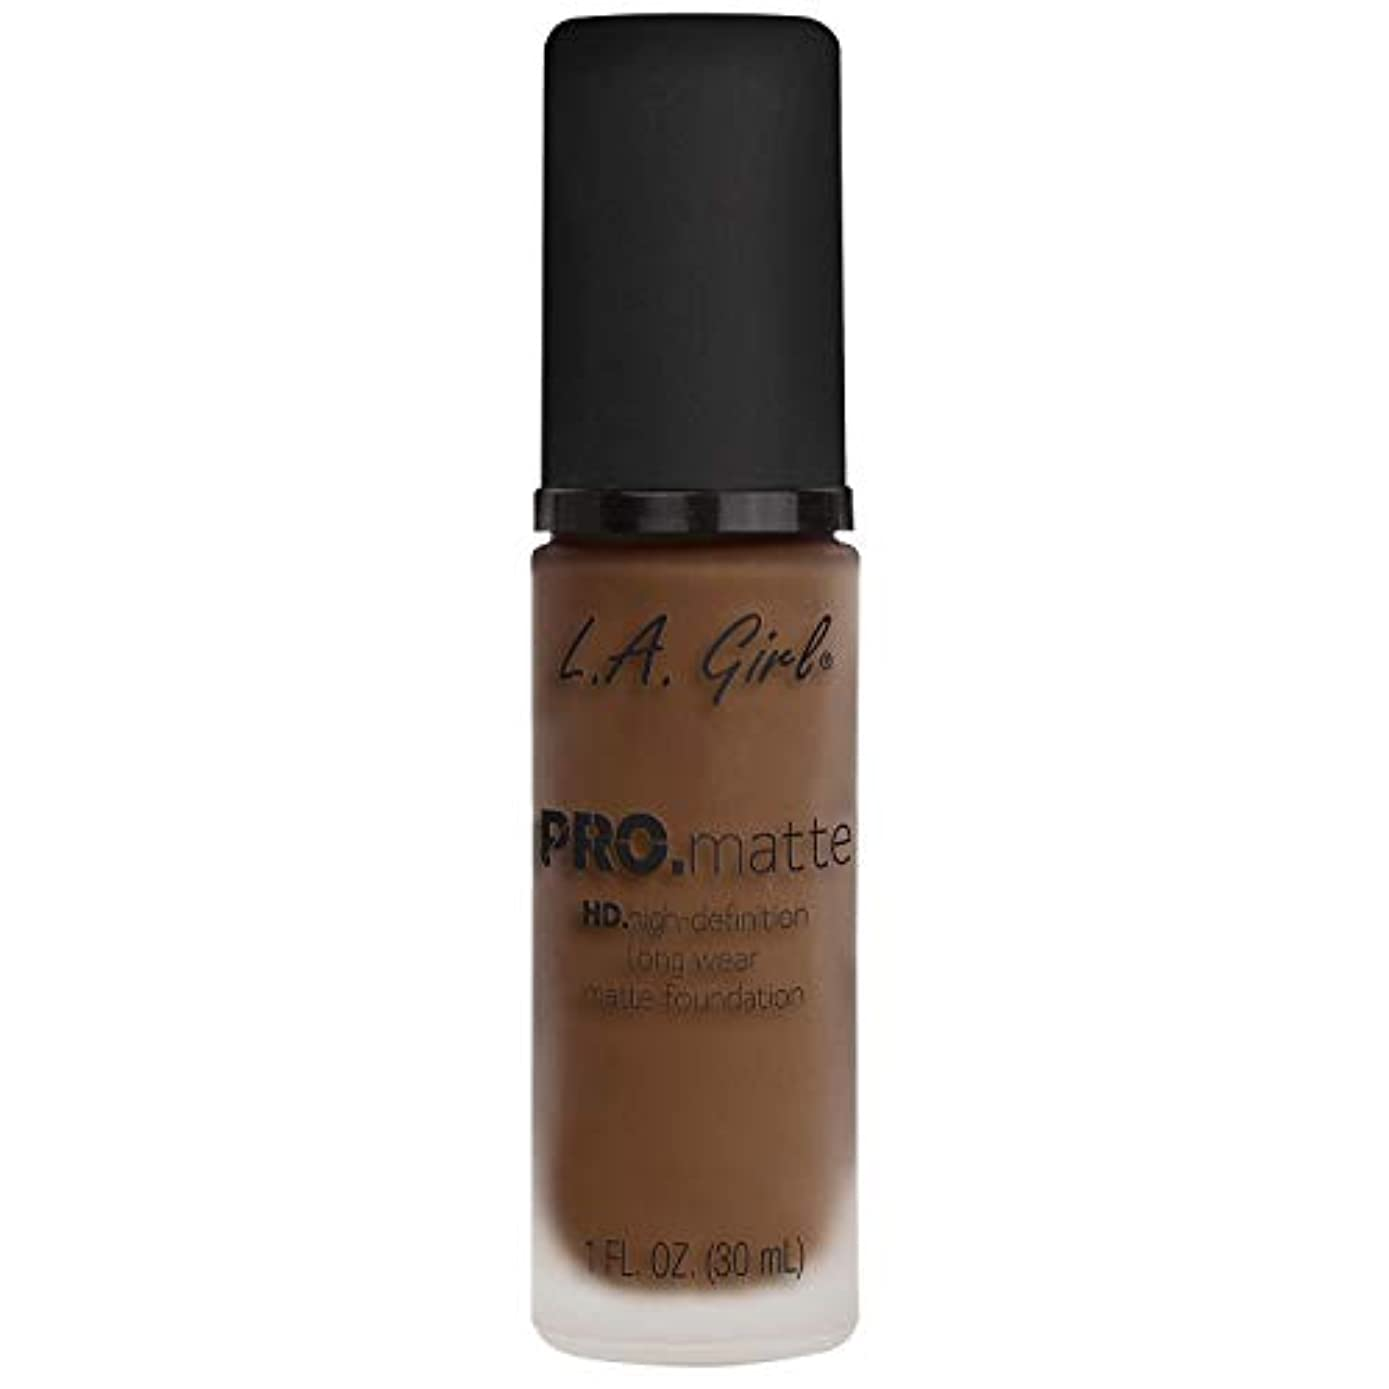 白い拡散する多用途(3 Pack) L.A. GIRL Pro Matte Foundation - Creamy Cocoa (並行輸入品)